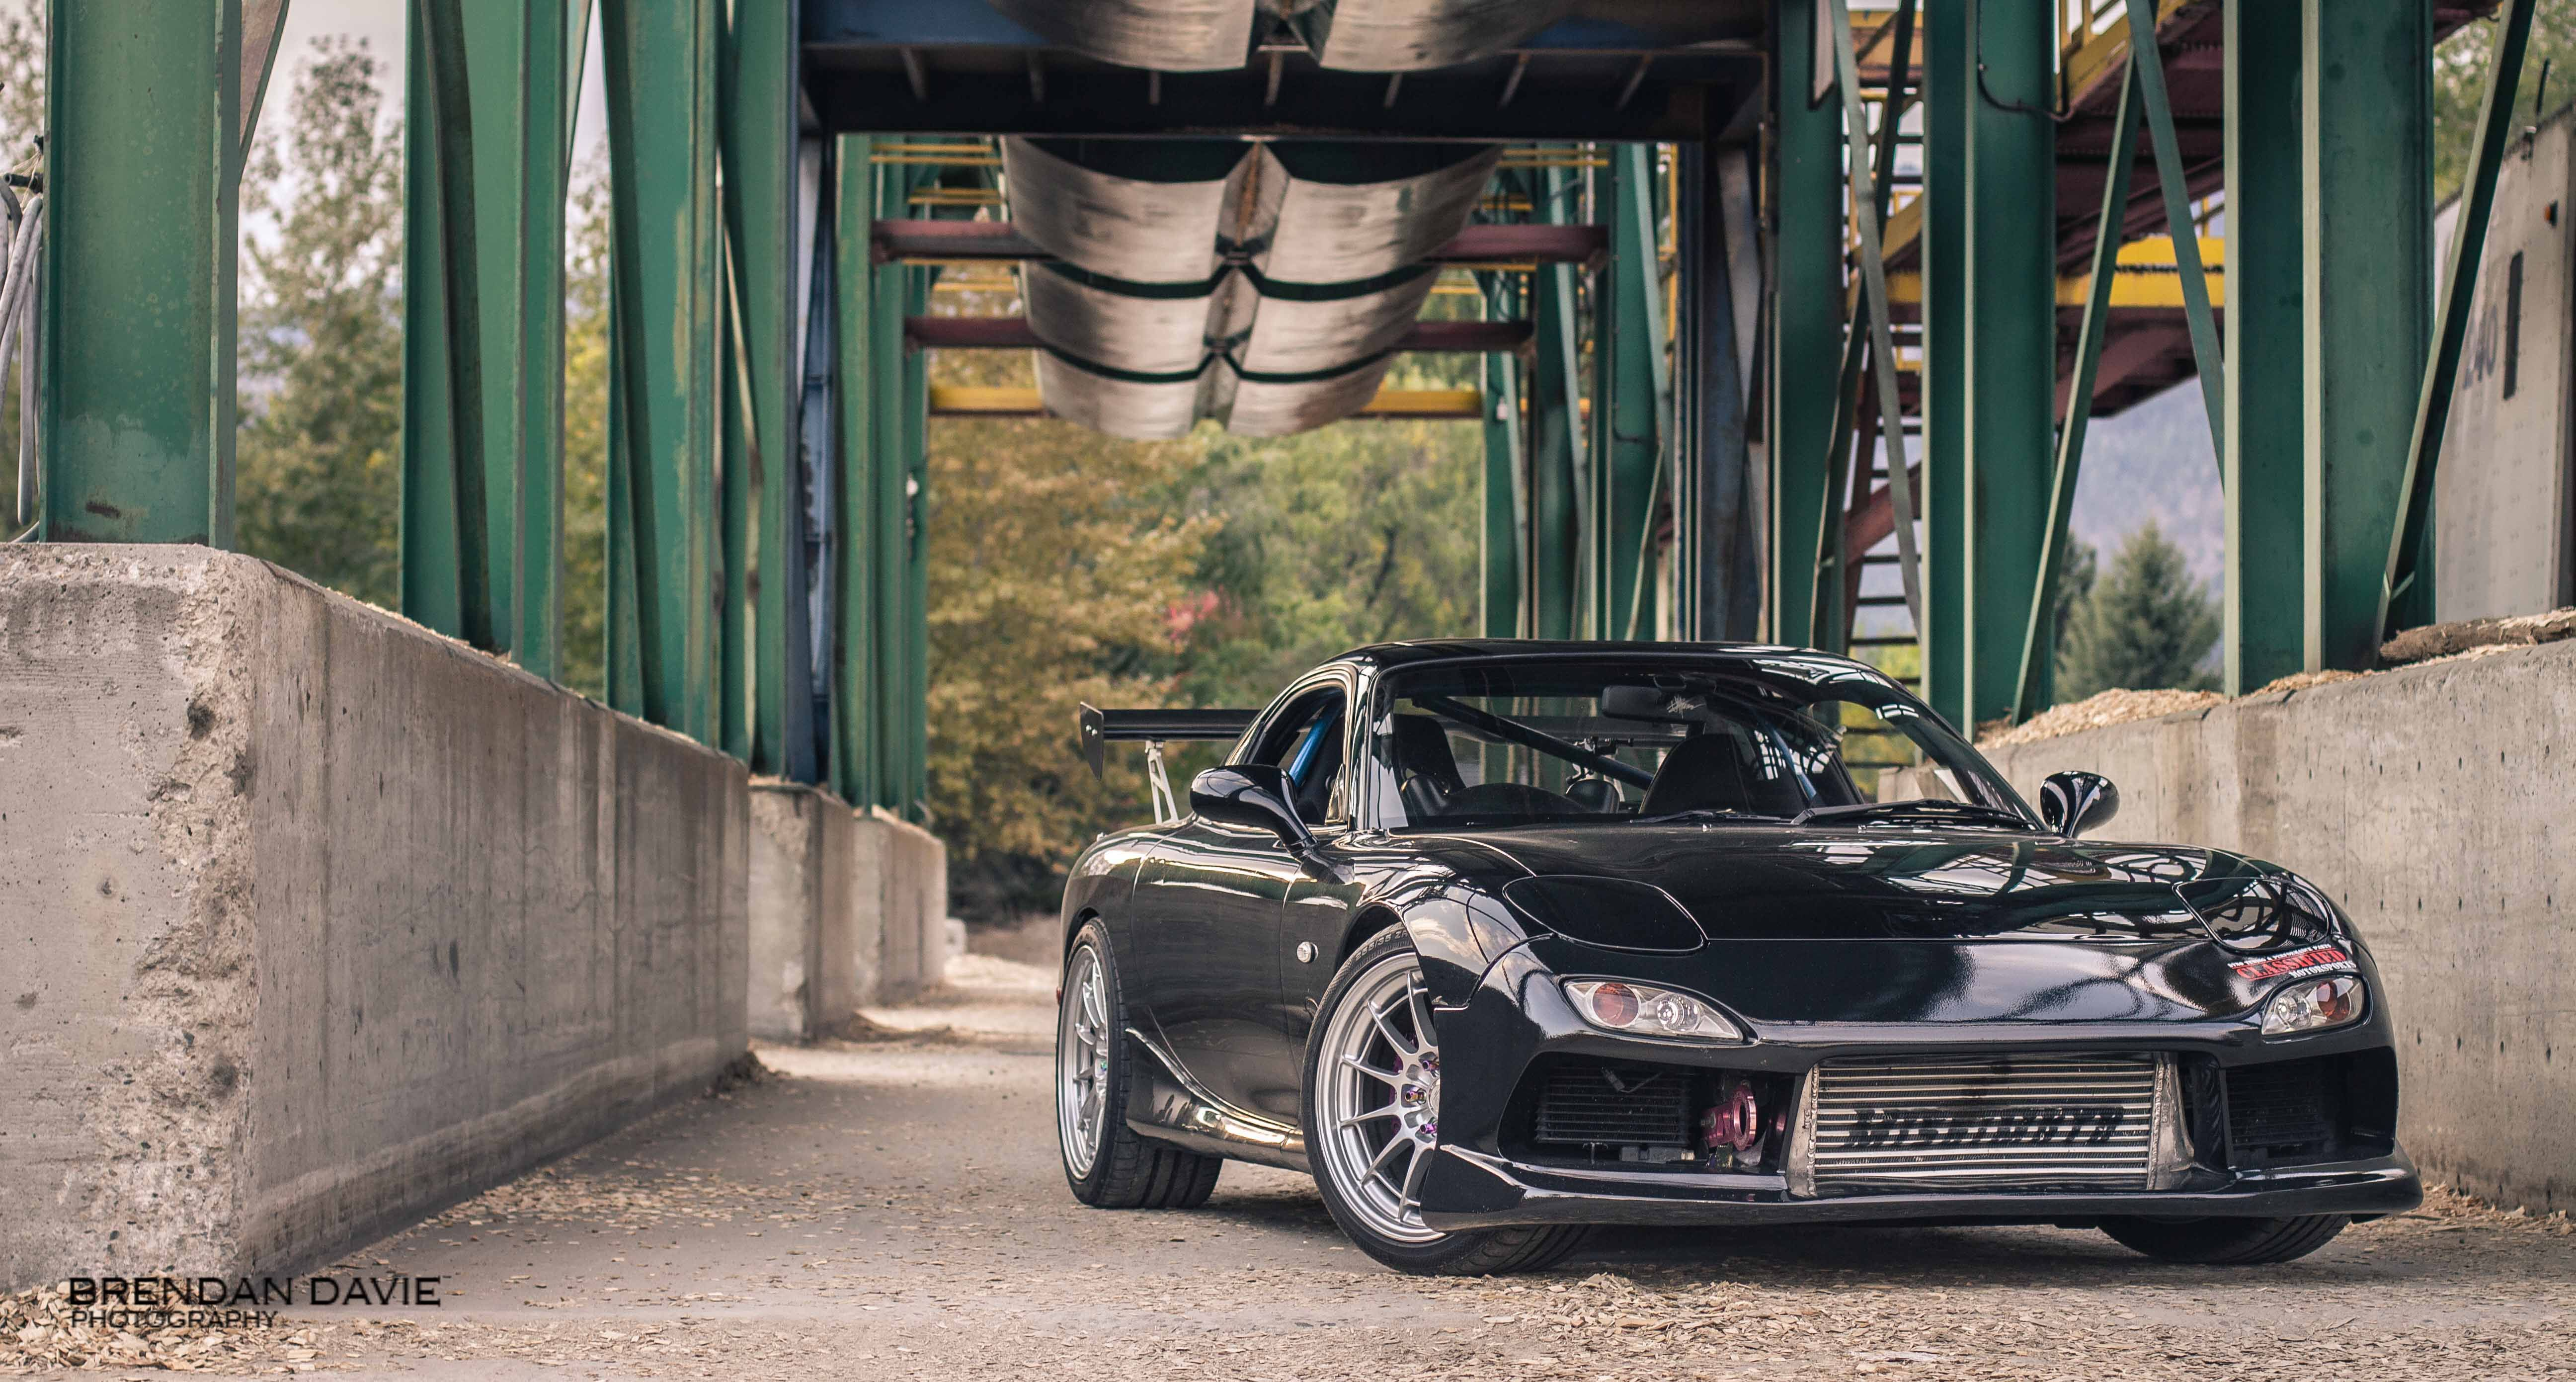 Pin By Barry Sims On Importtuner Japanese Cars Dream Cars Mazda Rx7